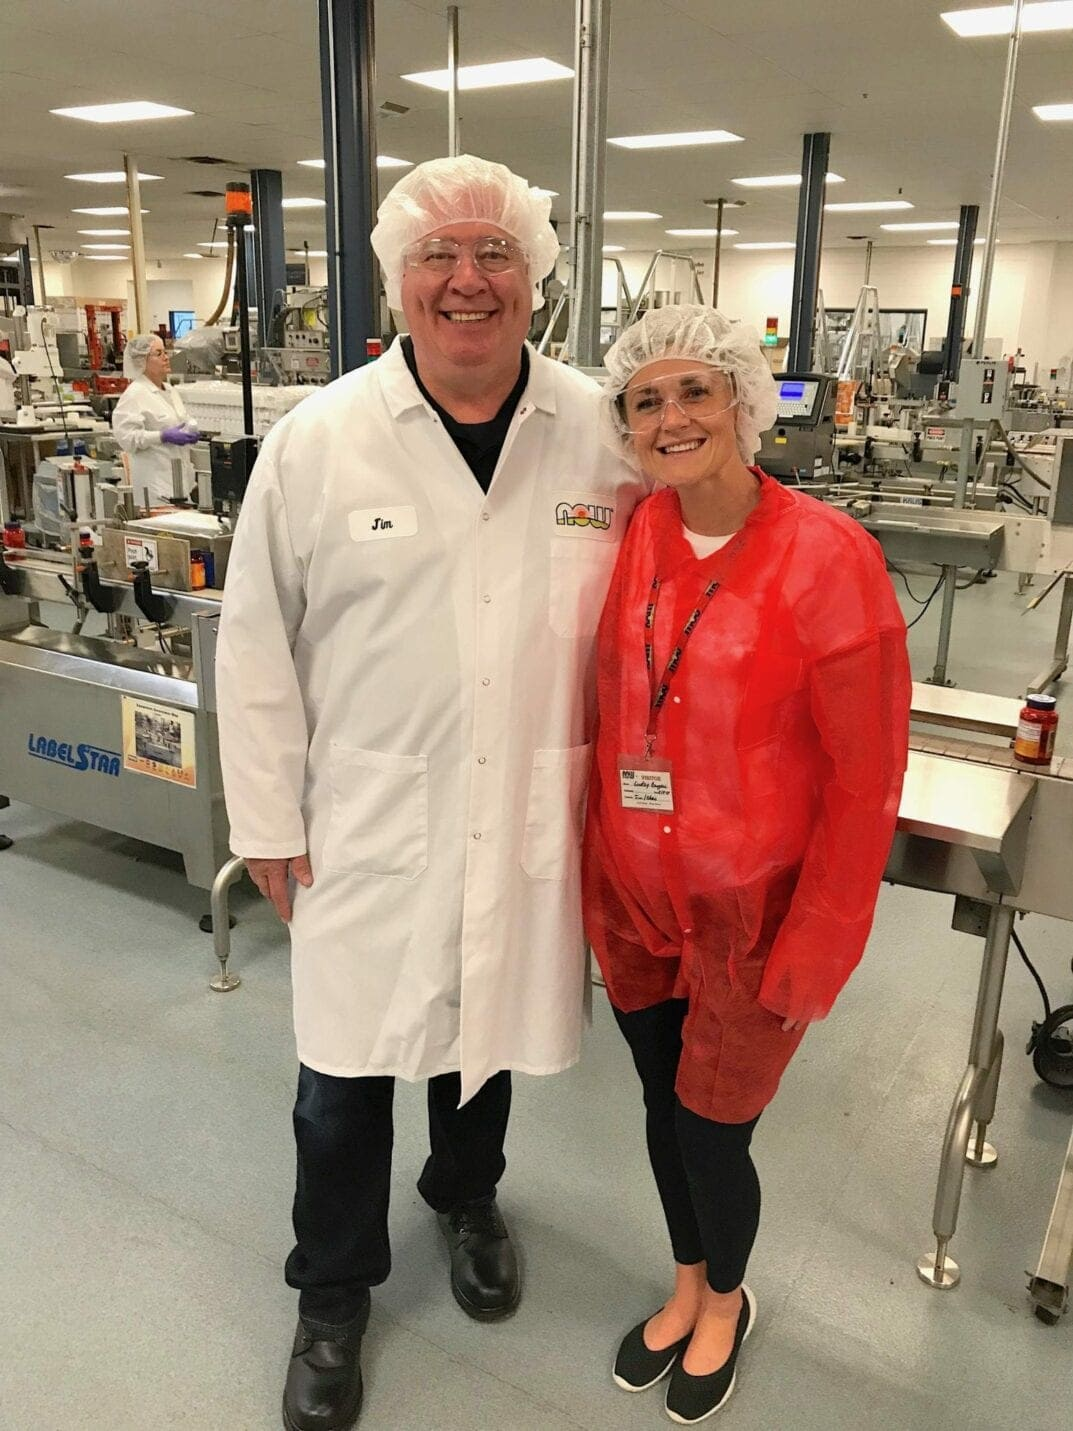 Photo with Jim Emme, NOW Foods CEO